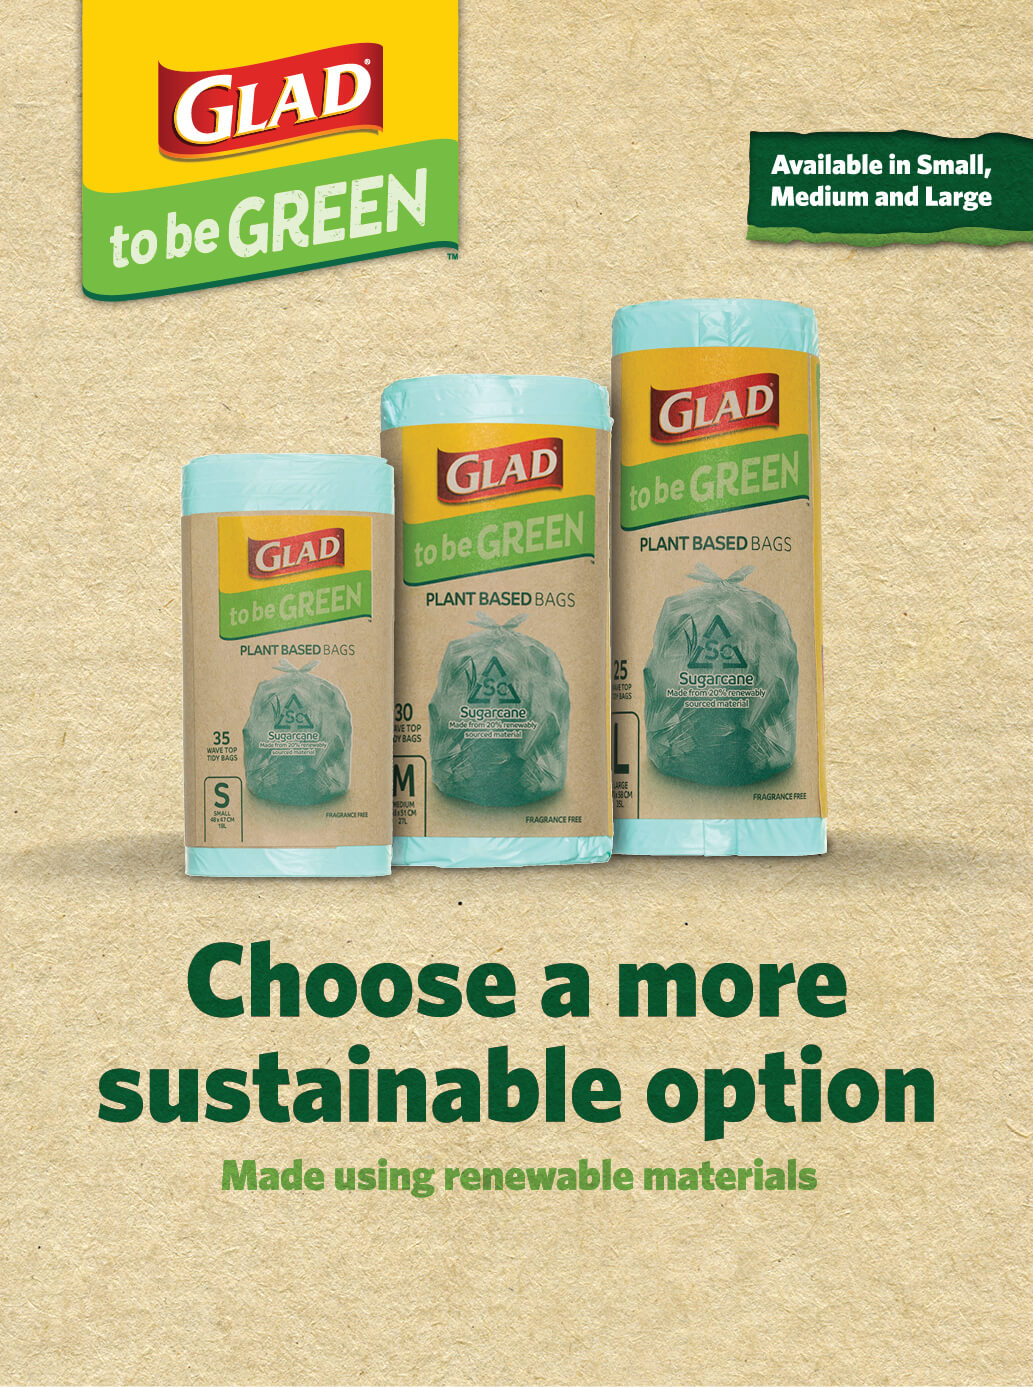 IMC_wk41_Glad_clorox_glad-to-be-green_plant-based-bags